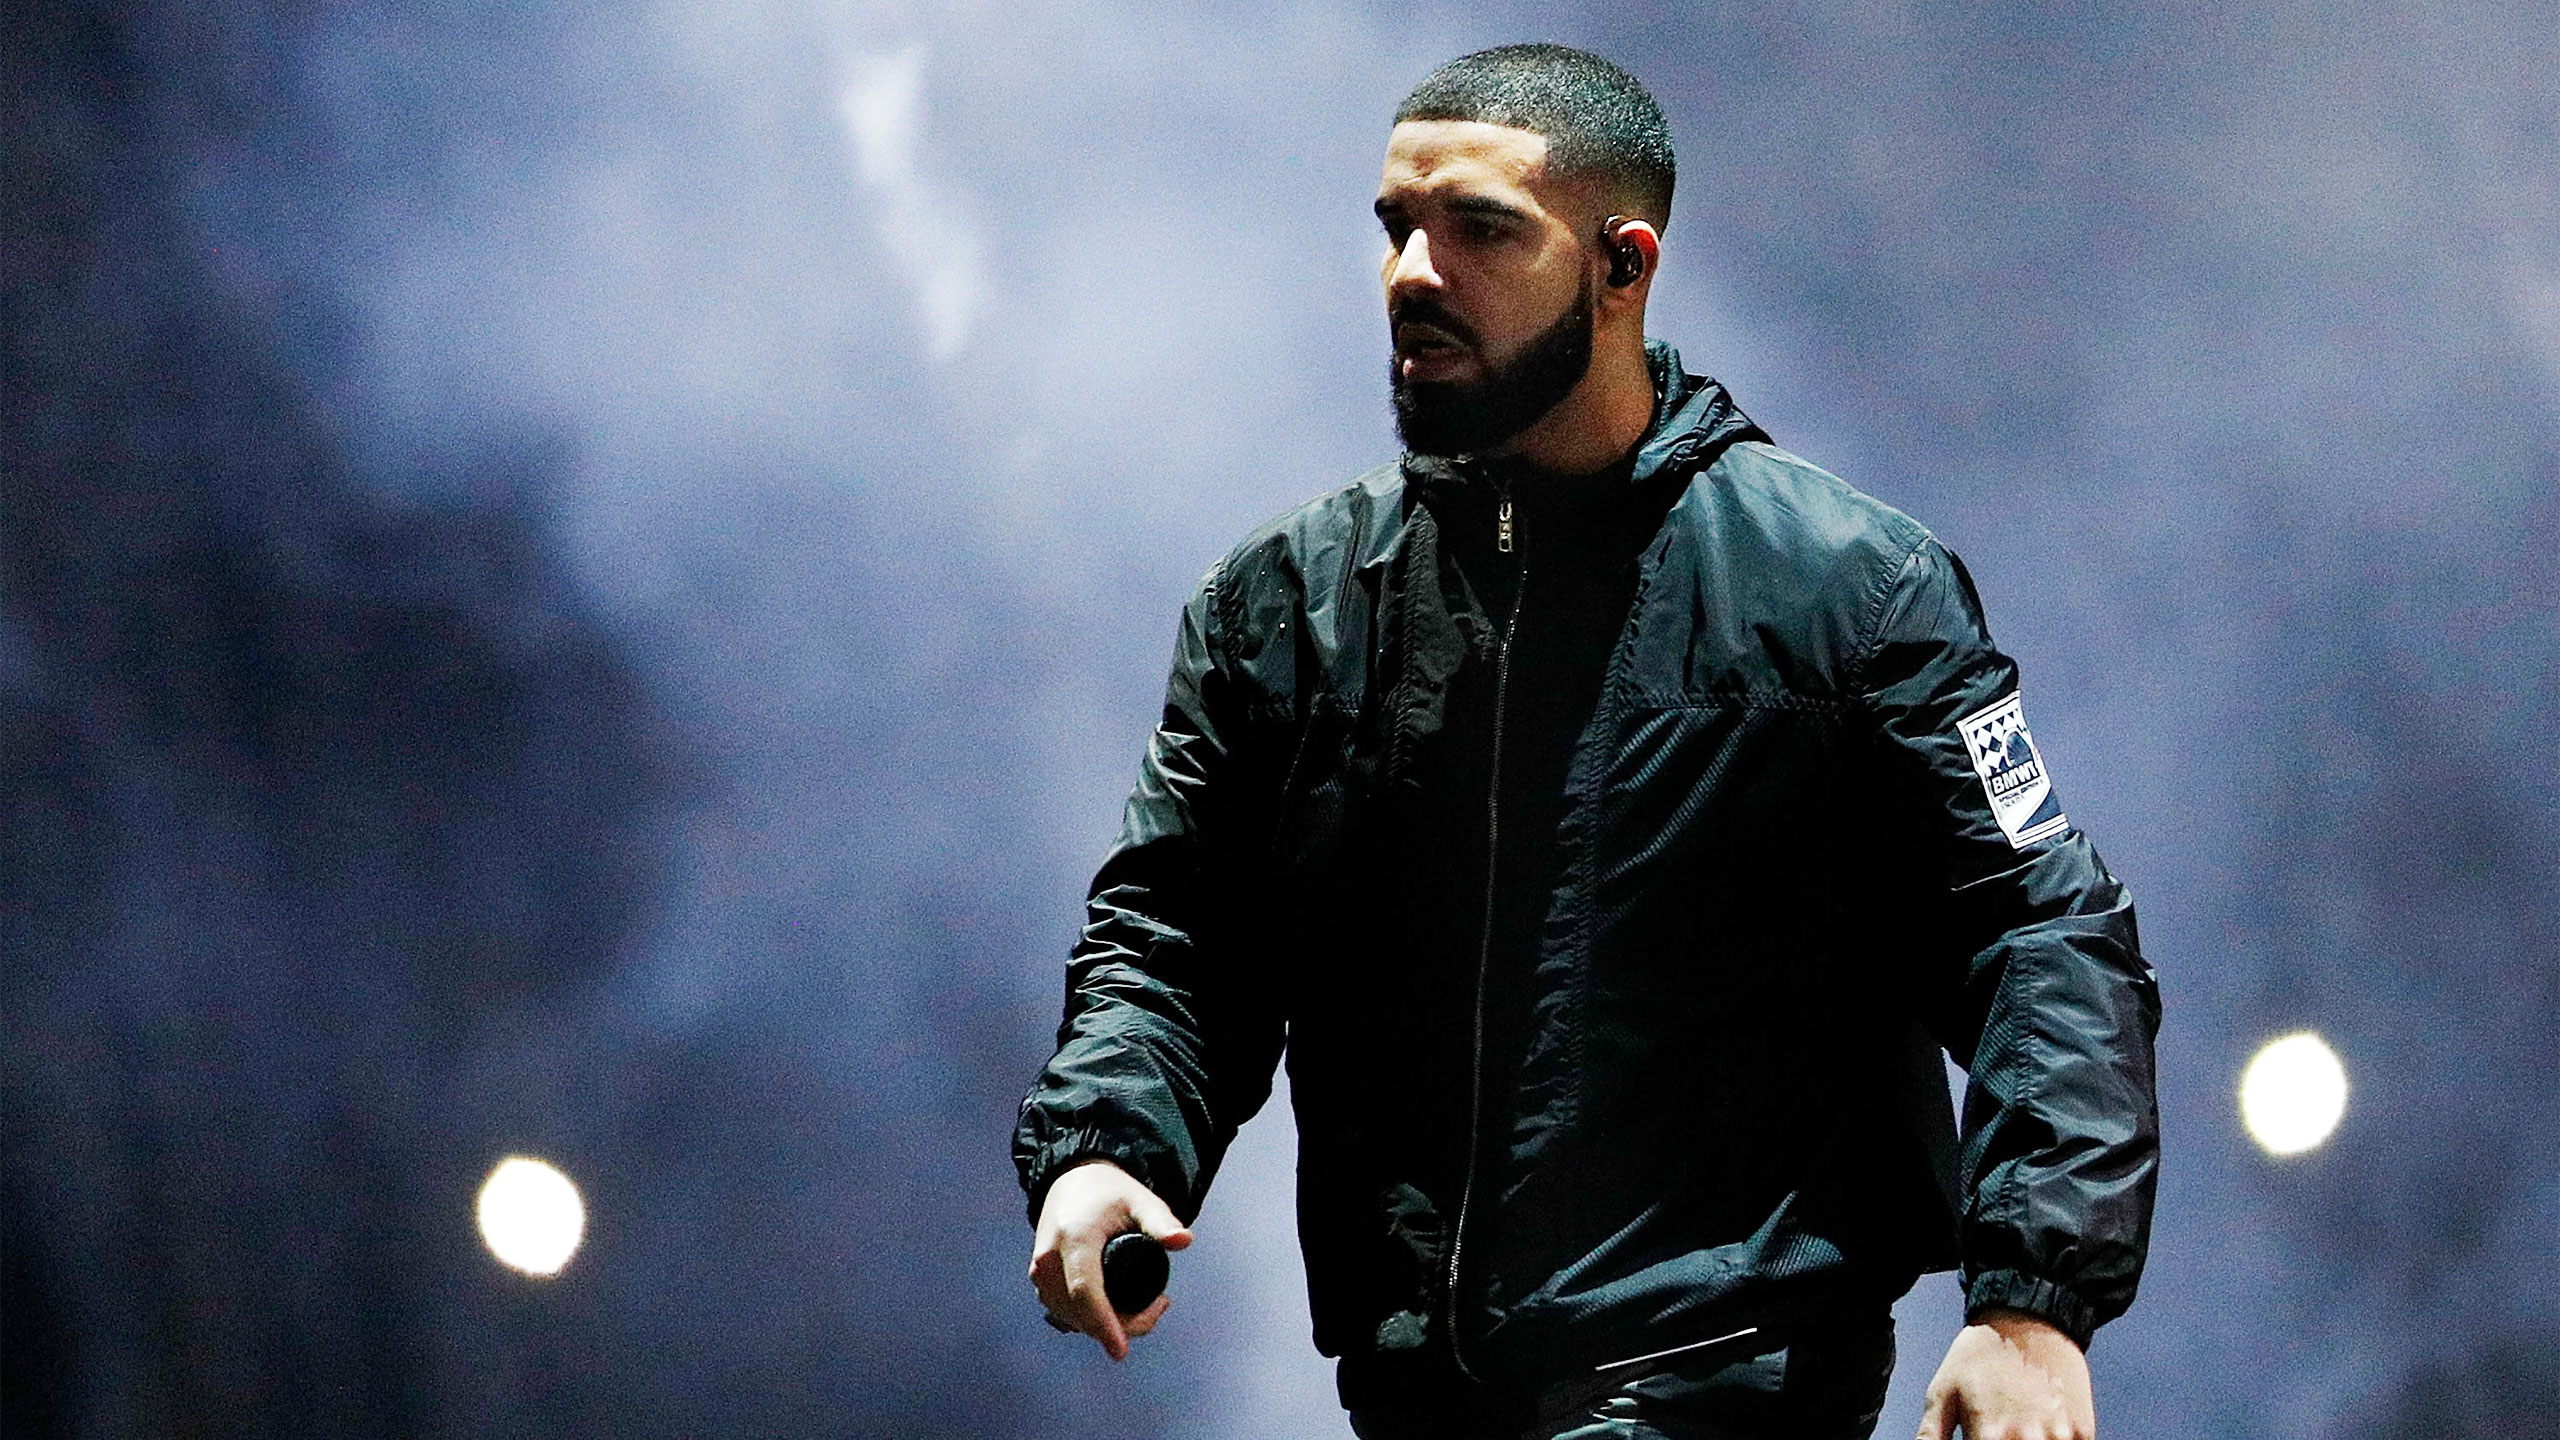 drake Drake & adidas Are Reportedly In Talks 171115 han drake lede v5q7mj